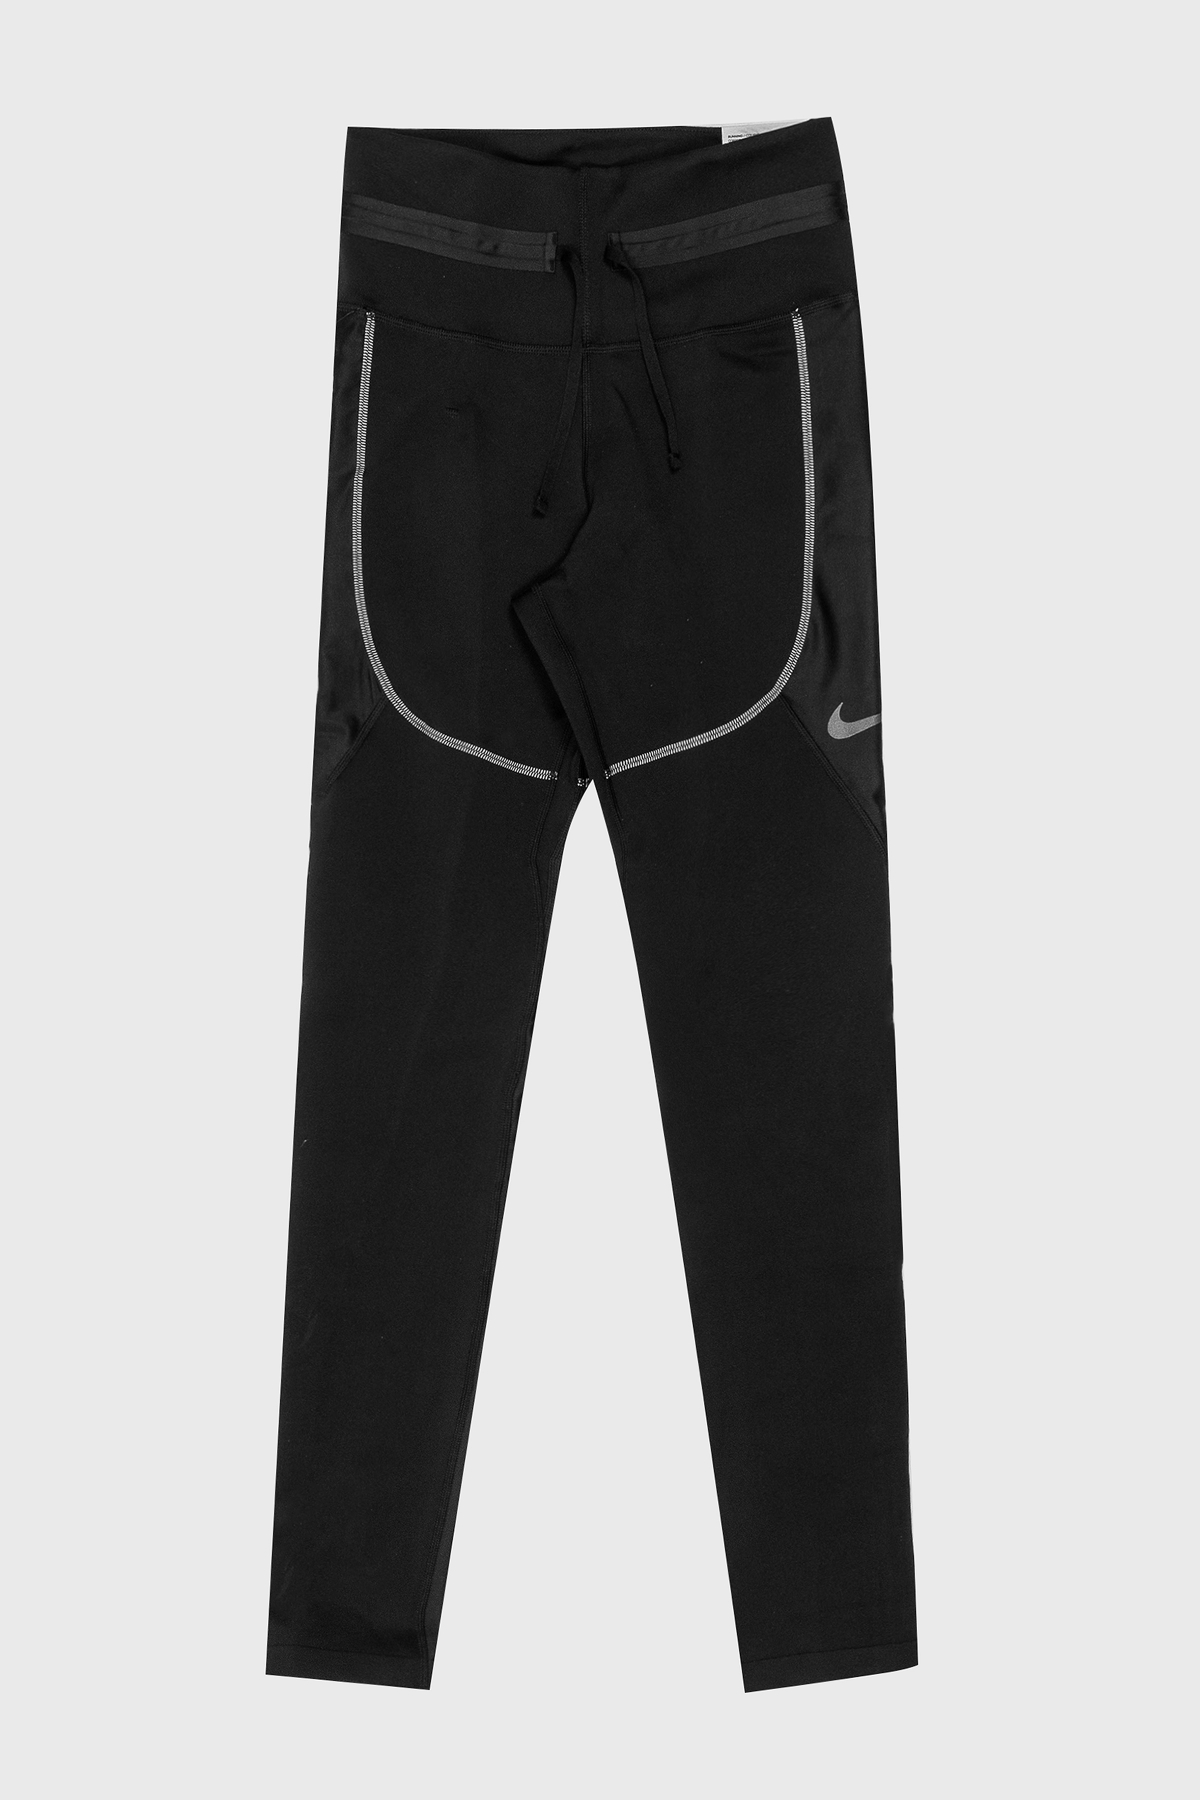 Nike W - LEGGING CITY READY - Black